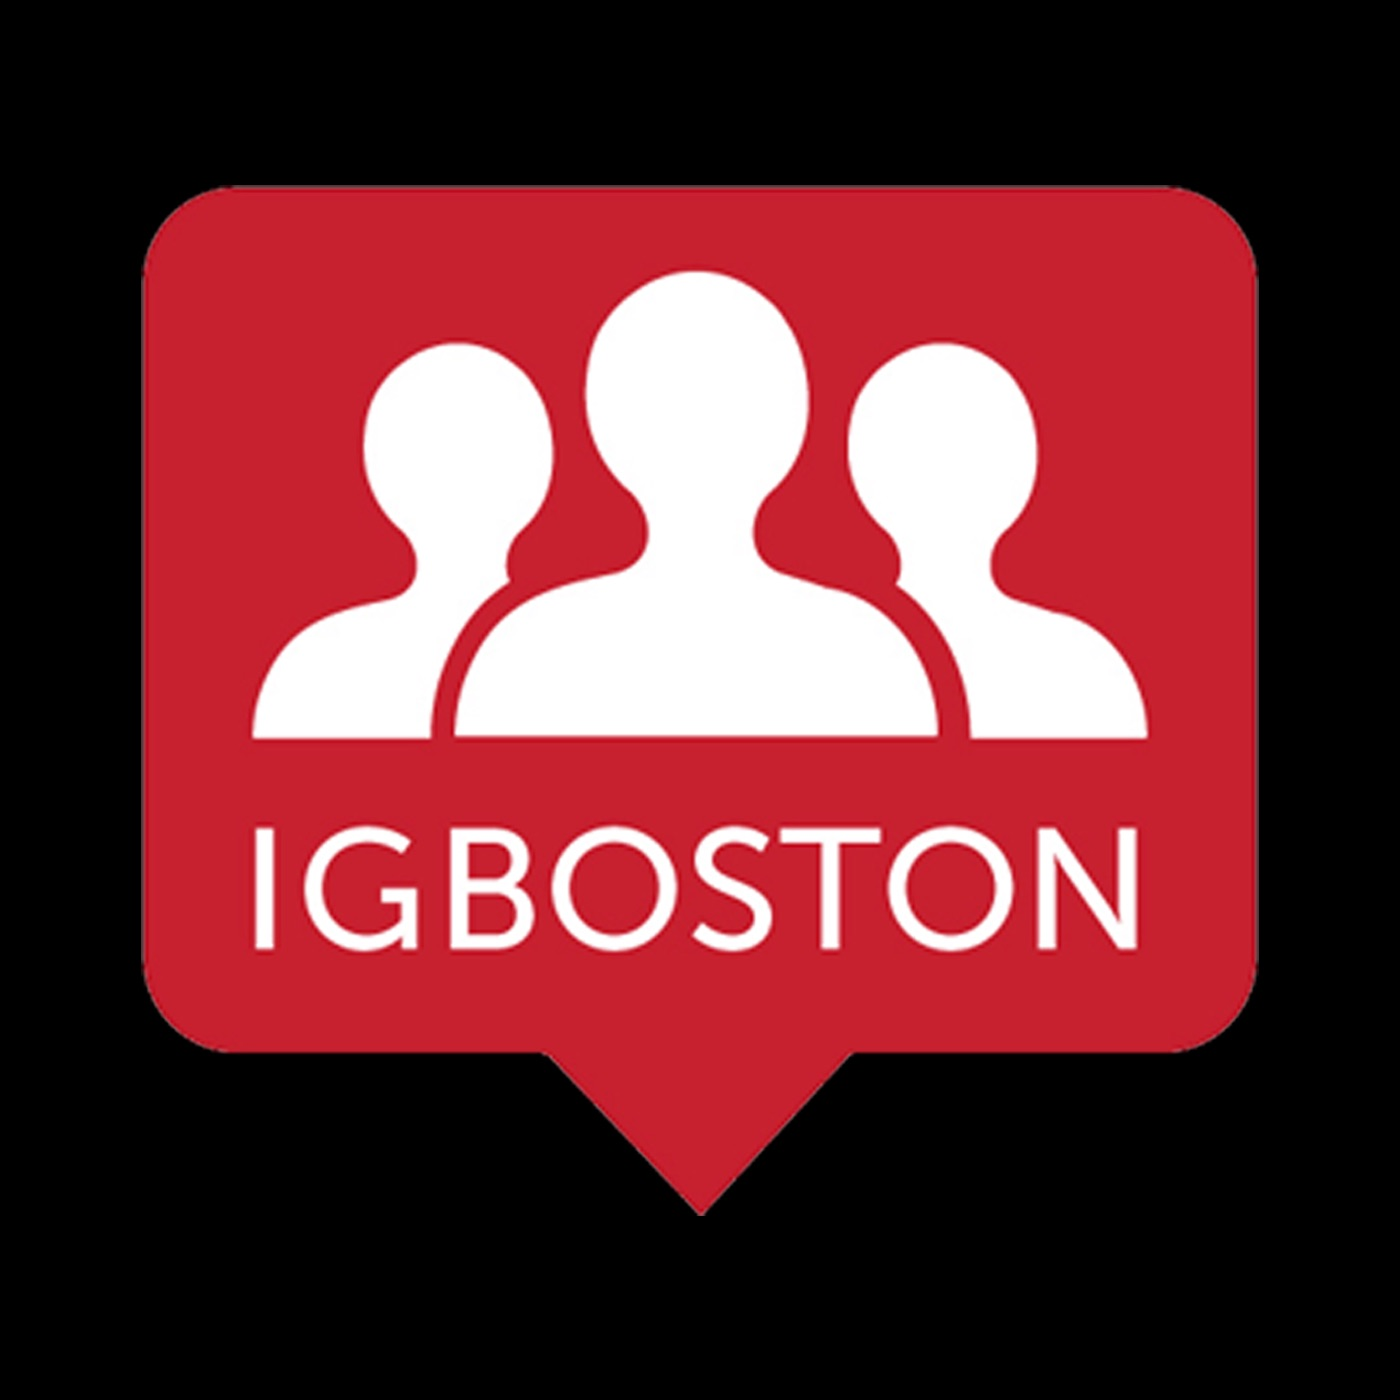 IGBoston's Direct Message